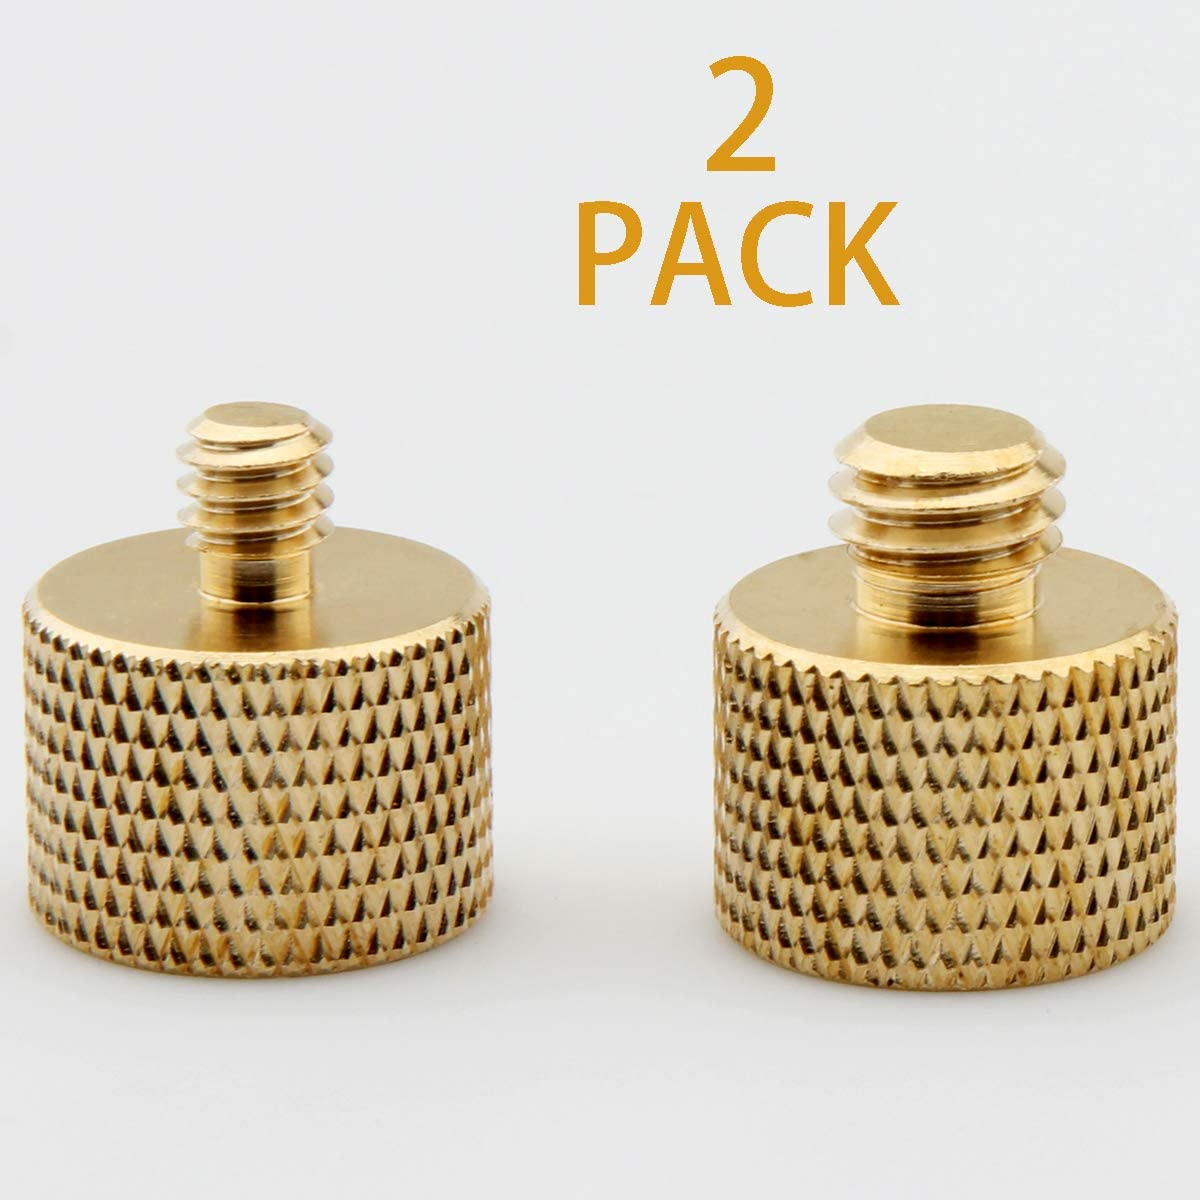 "XINJUE 2 Pieces, Microphone Holder Camera Tripod Adapter Adapter, Combination Packaging, 1 Piece (1/4"" Male to 5/8"" Female) 1 Piece, (3/8"" Male to 5/8"" Female)(Brass)"